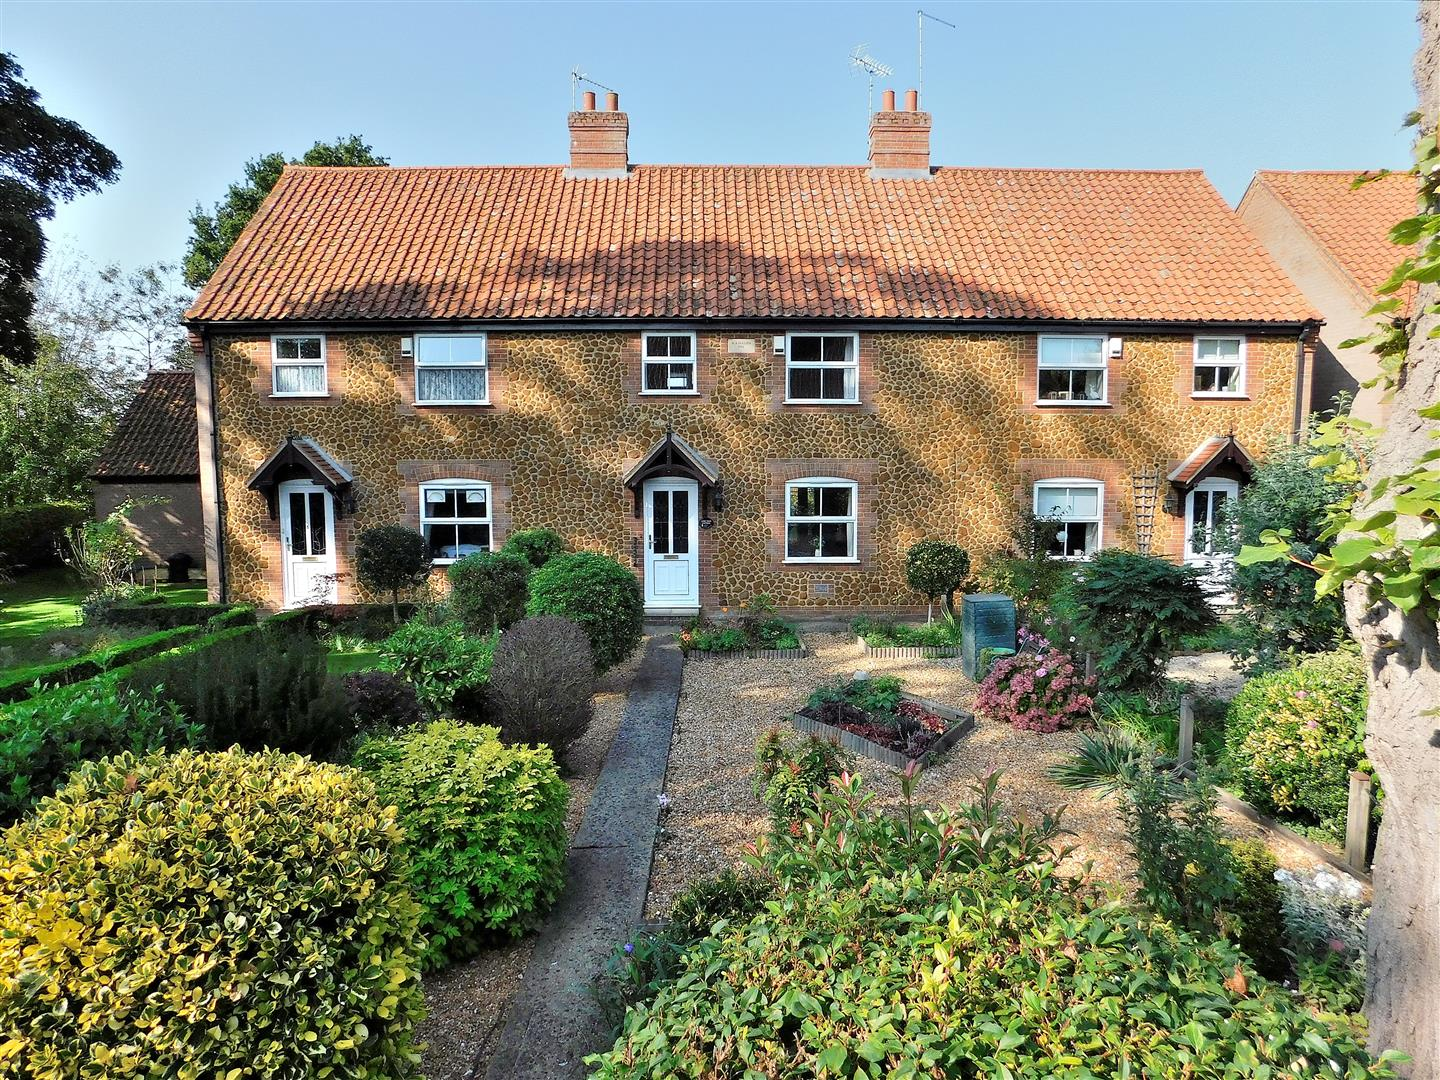 3 bed terraced house for sale in King's Lynn, PE31 6WA  - Property Image 1